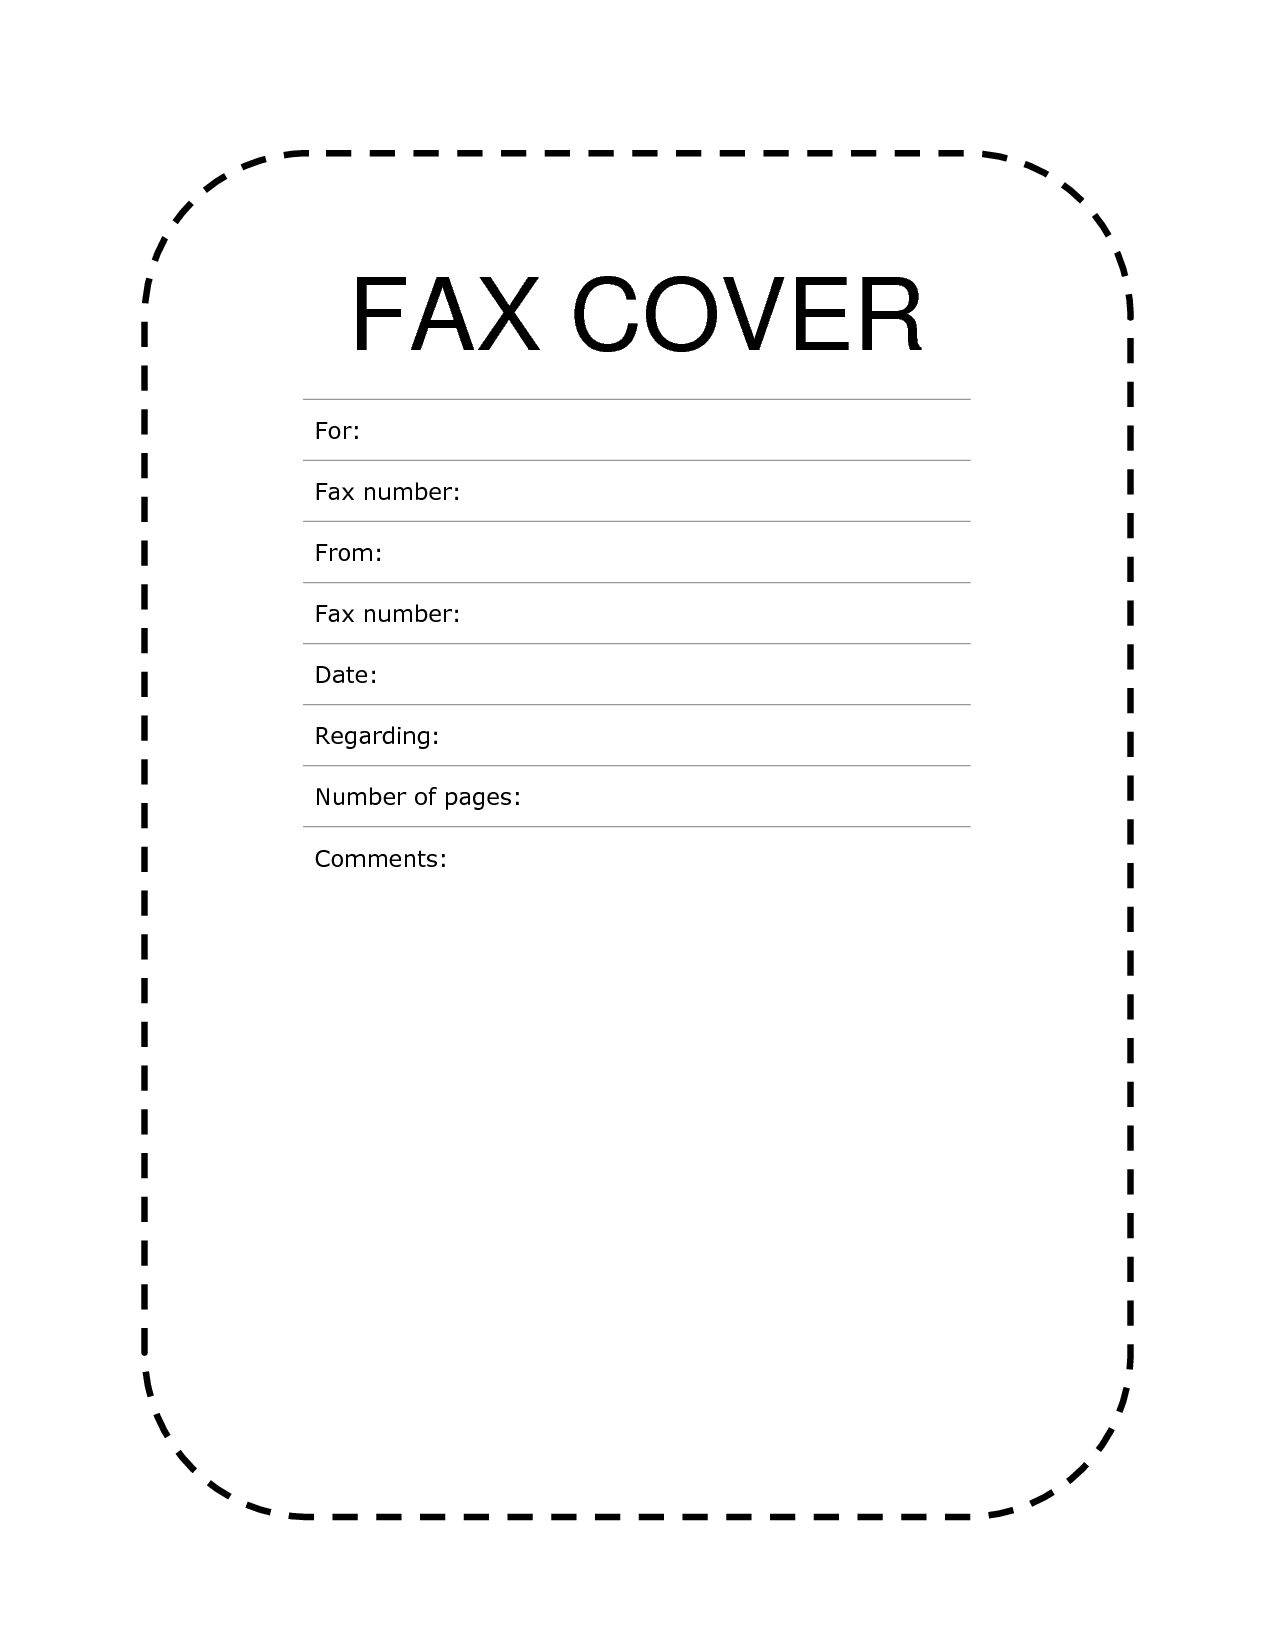 Free Fax Cover Sheet Template Format Example Pdf Printable   Fax - Free Printable Fax Cover Sheet